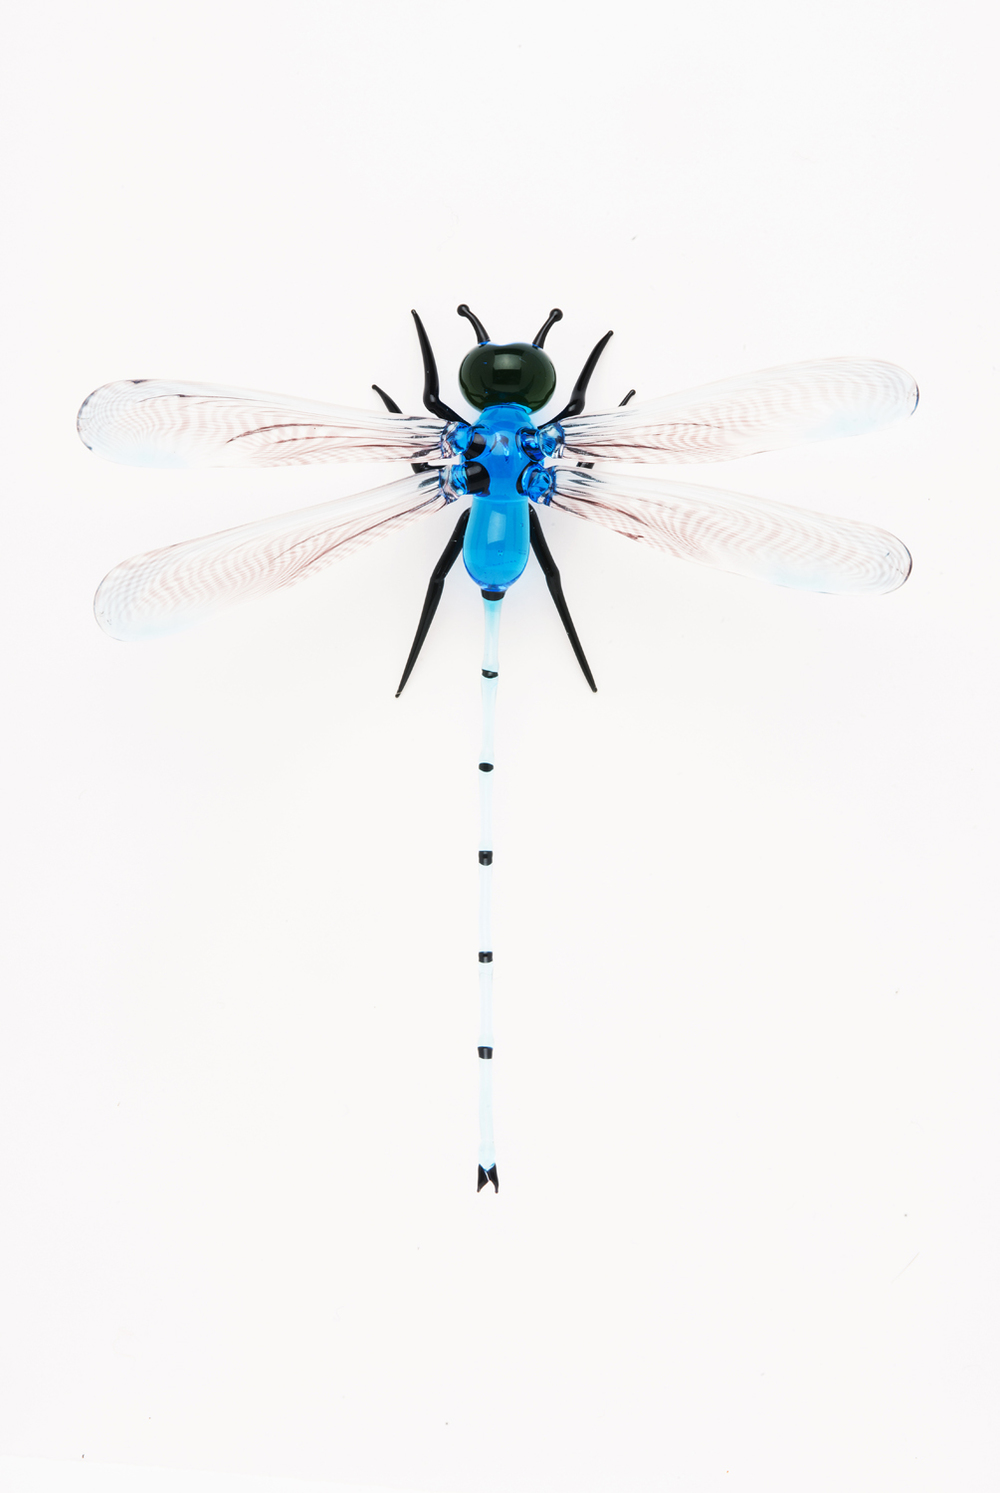 Vittorio Costantini,  Family: ibelluloidae, Order: Odonata  (2005, soda-lime glass, 3 5/16 x 3 1/8 x 1 1/8 inches), VC.32